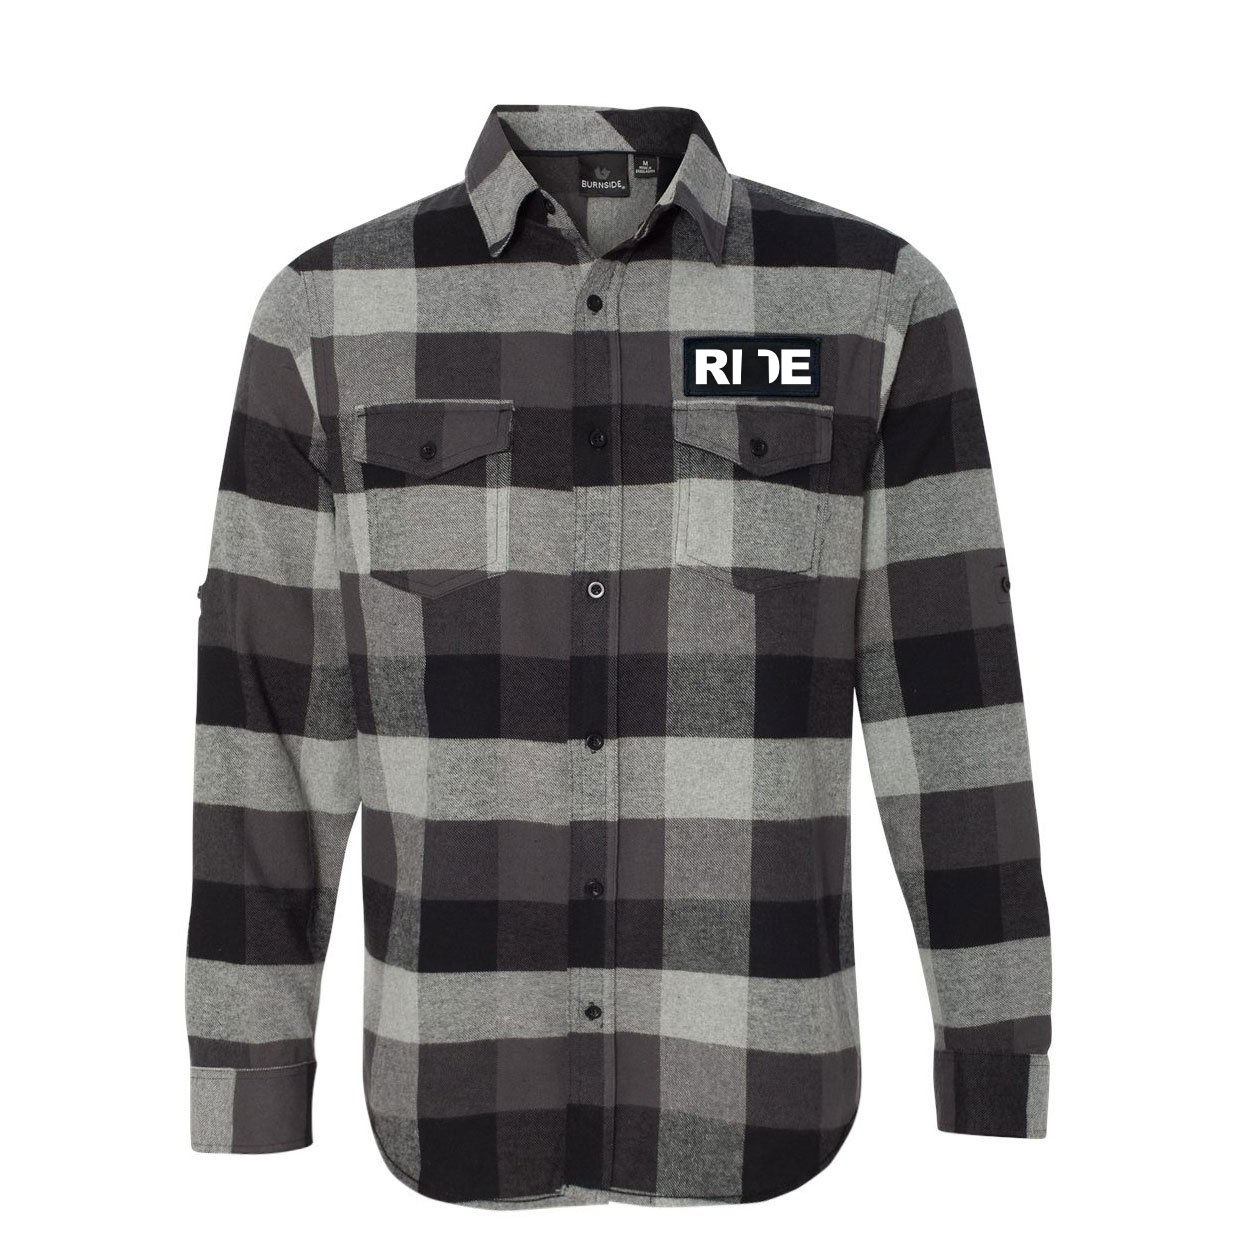 Ride Utah Classic Unisex Long Sleeve Woven Patch Flannel Shirt Black/Gray (White Logo)